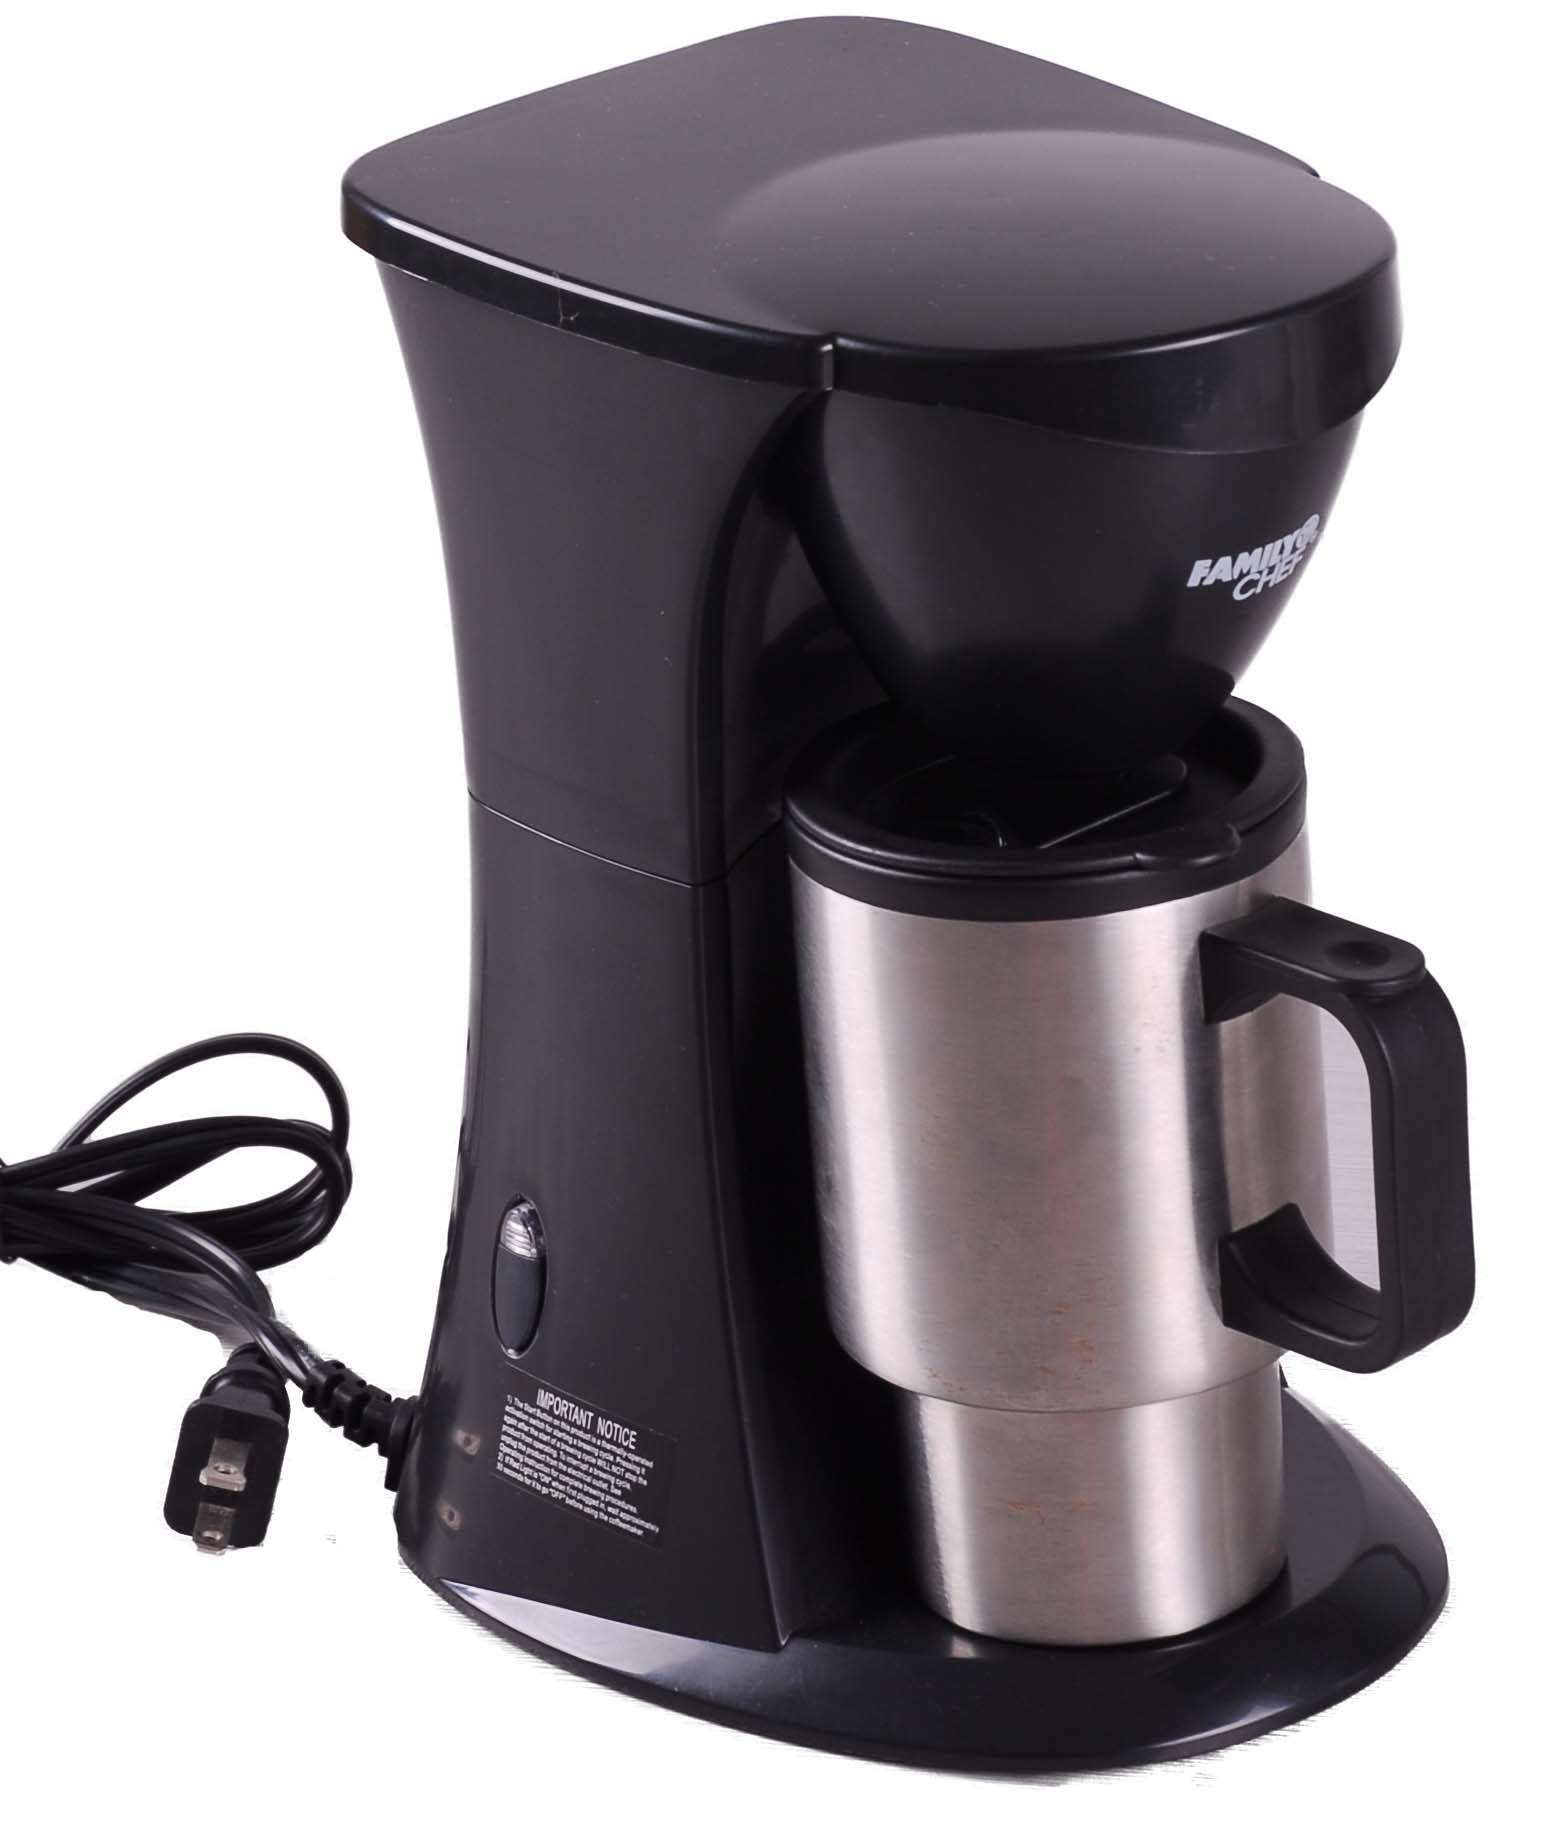 Ninja Cf086 Thermal Coffee Bar Coffee Makers For The Home Shop - Coffeemaker